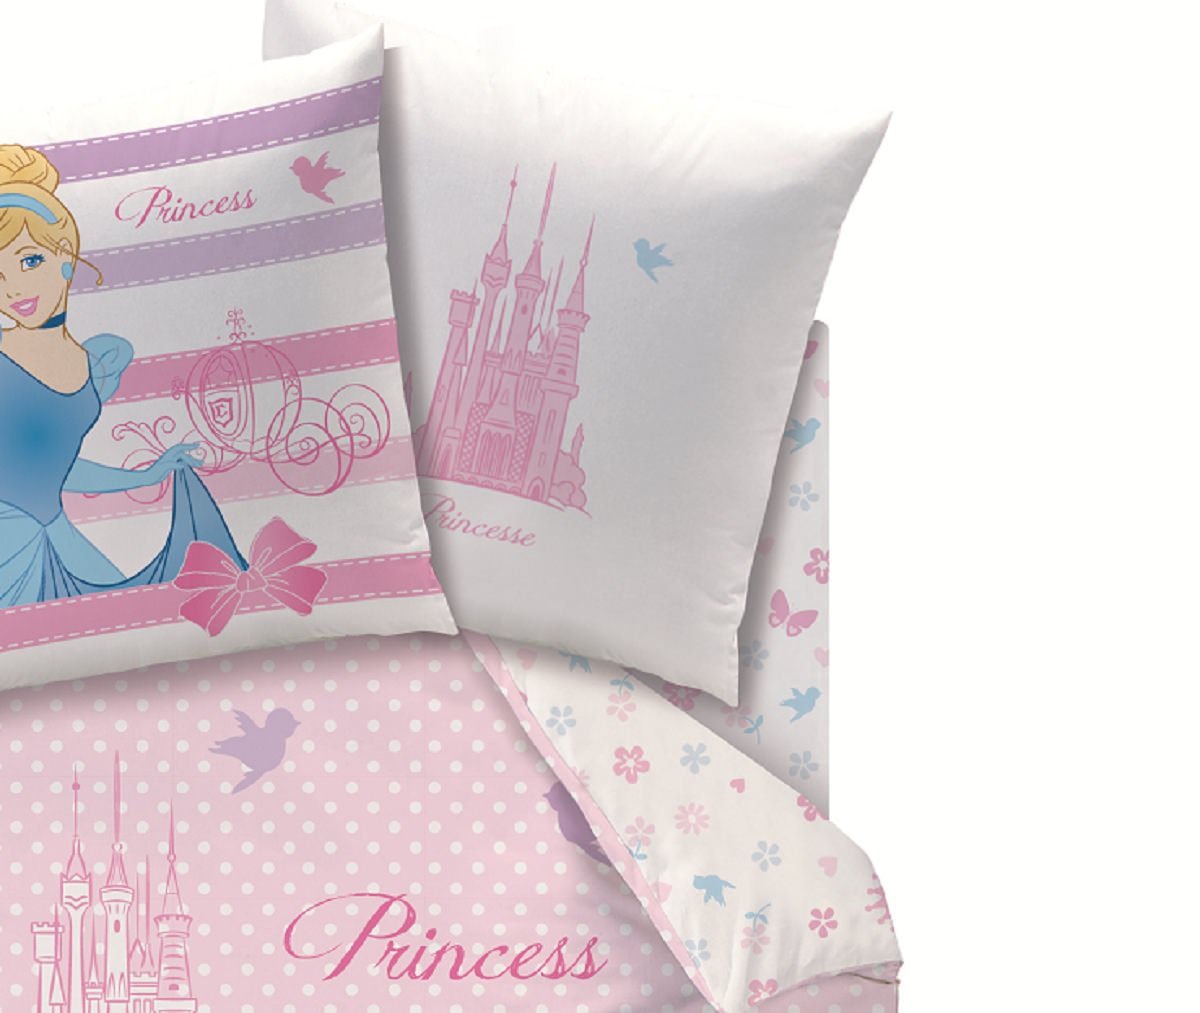 disney princesse drap housse 90 x 190 cm assorti la housse de couette happy ending et. Black Bedroom Furniture Sets. Home Design Ideas